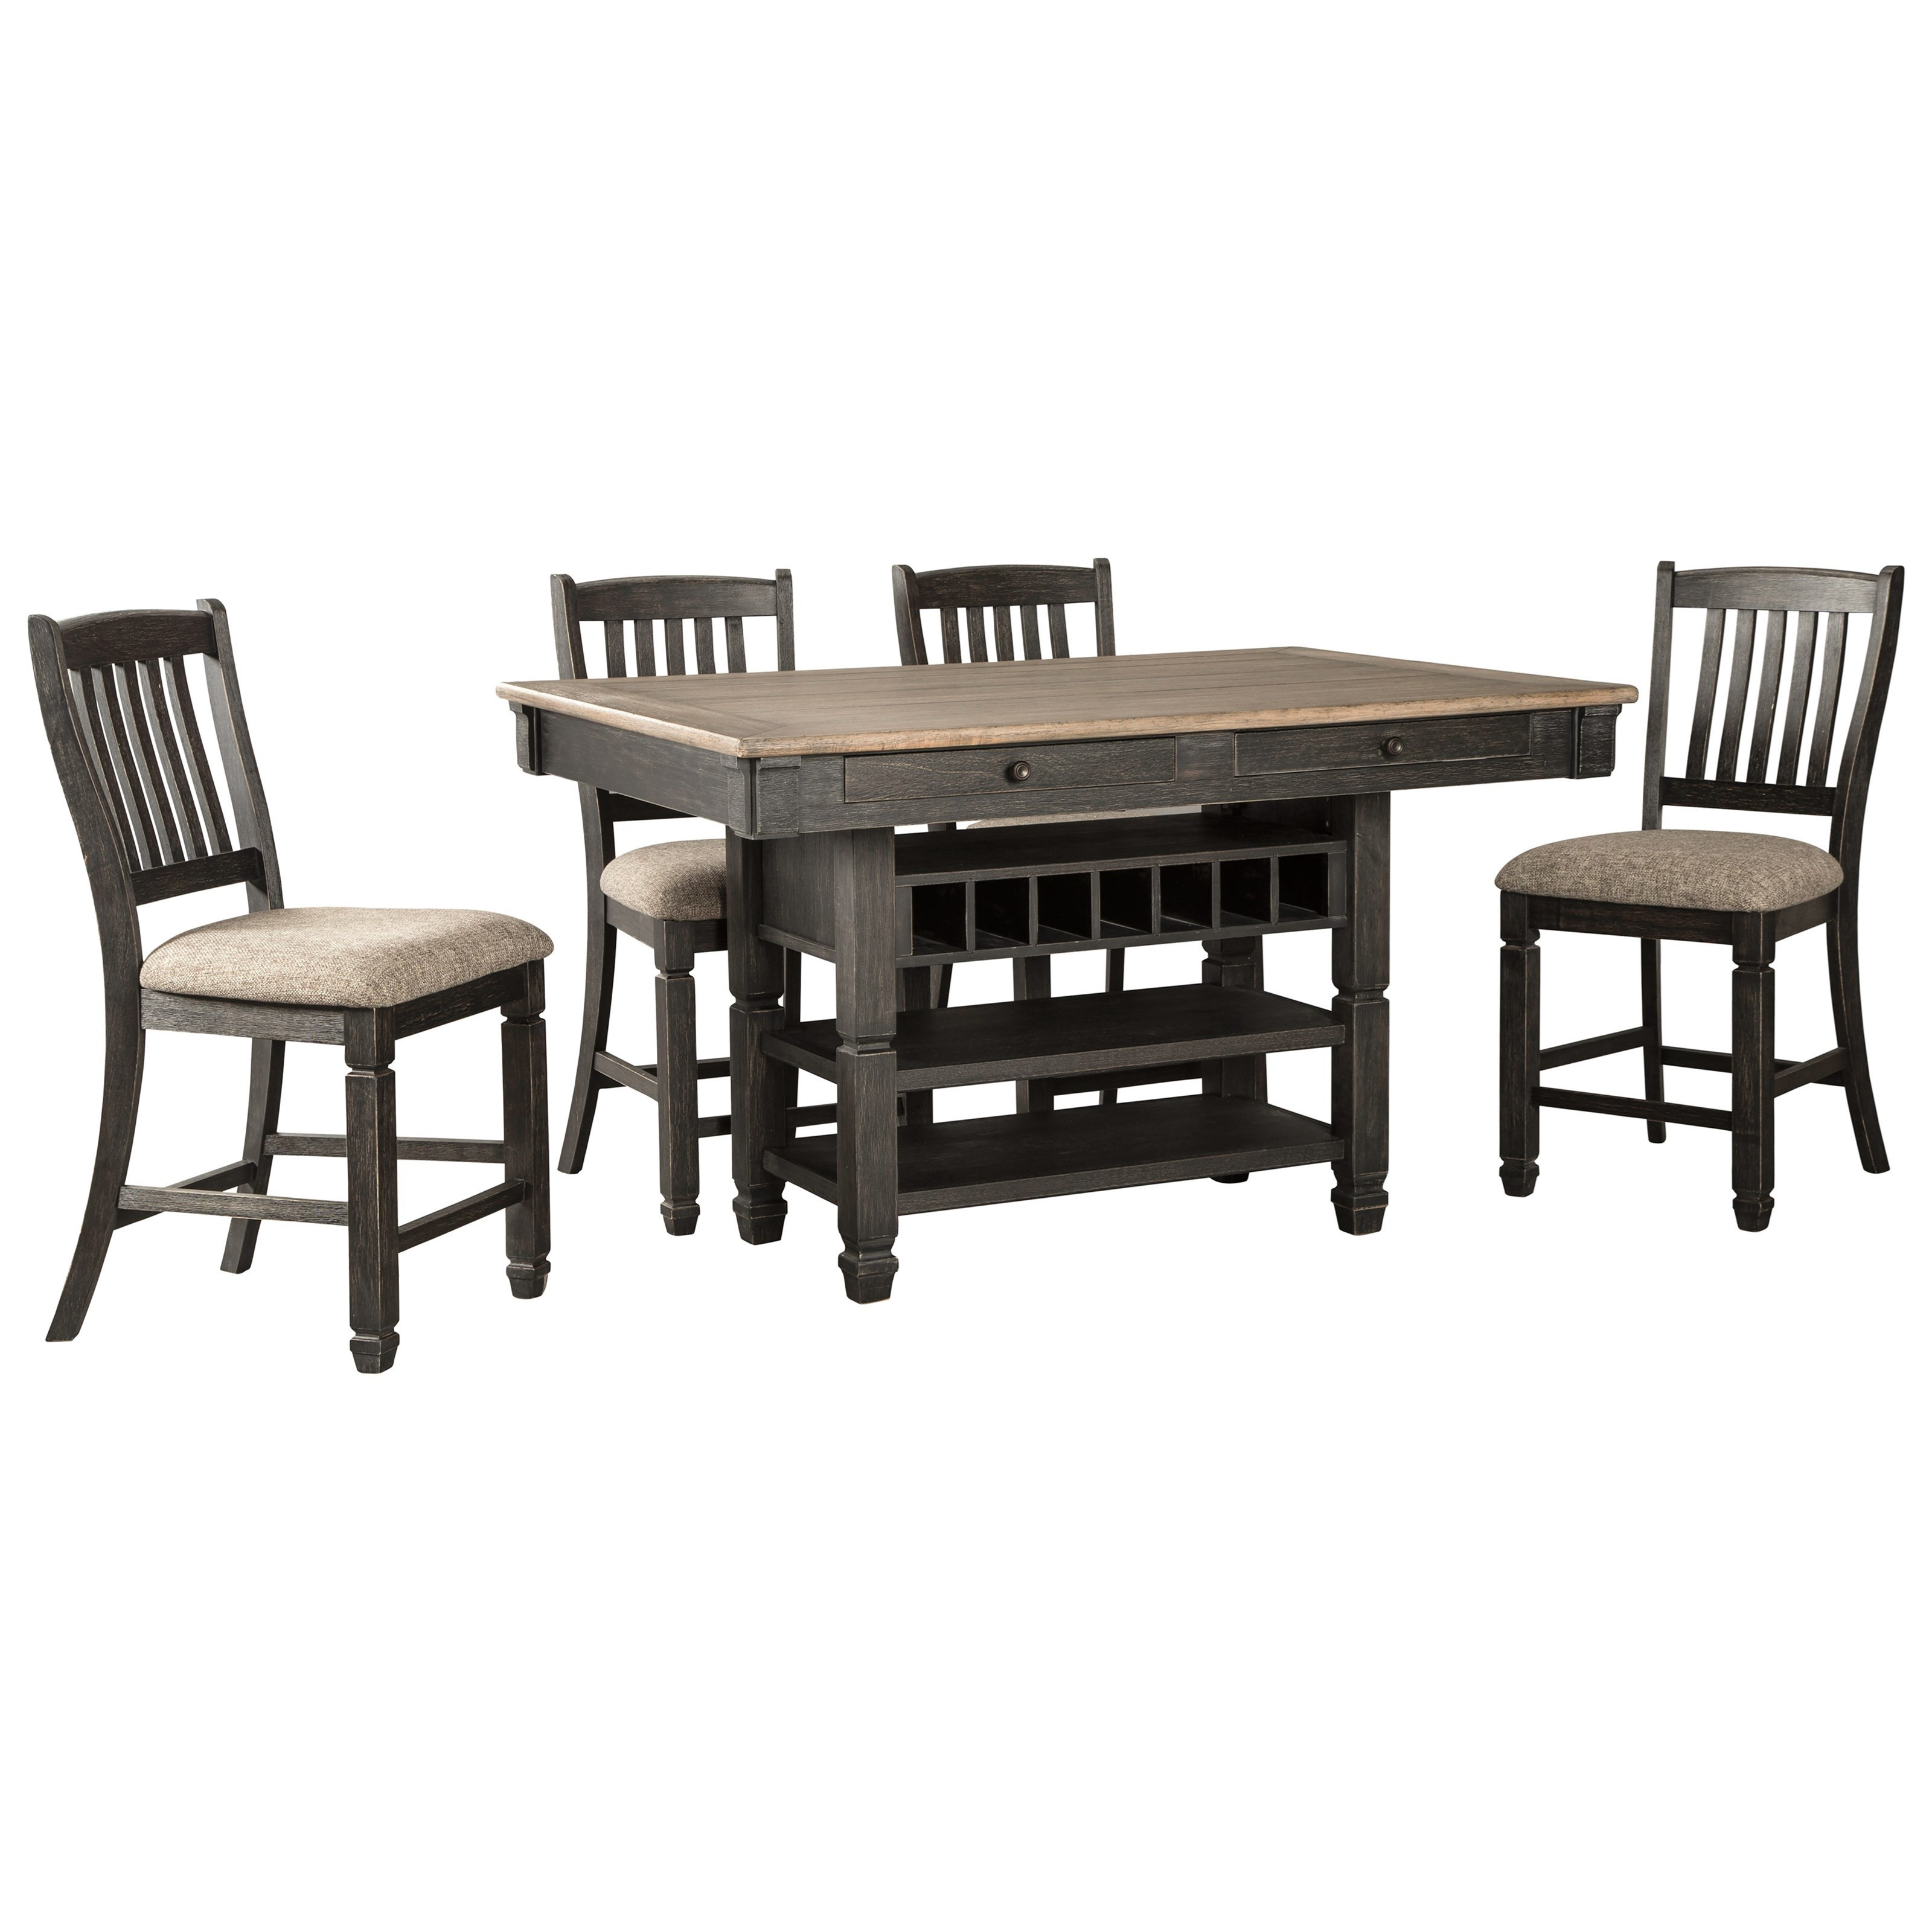 Tyler Creek 5-Piece Counter Table and Stool Set by Signature Design by Ashley at Sparks HomeStore